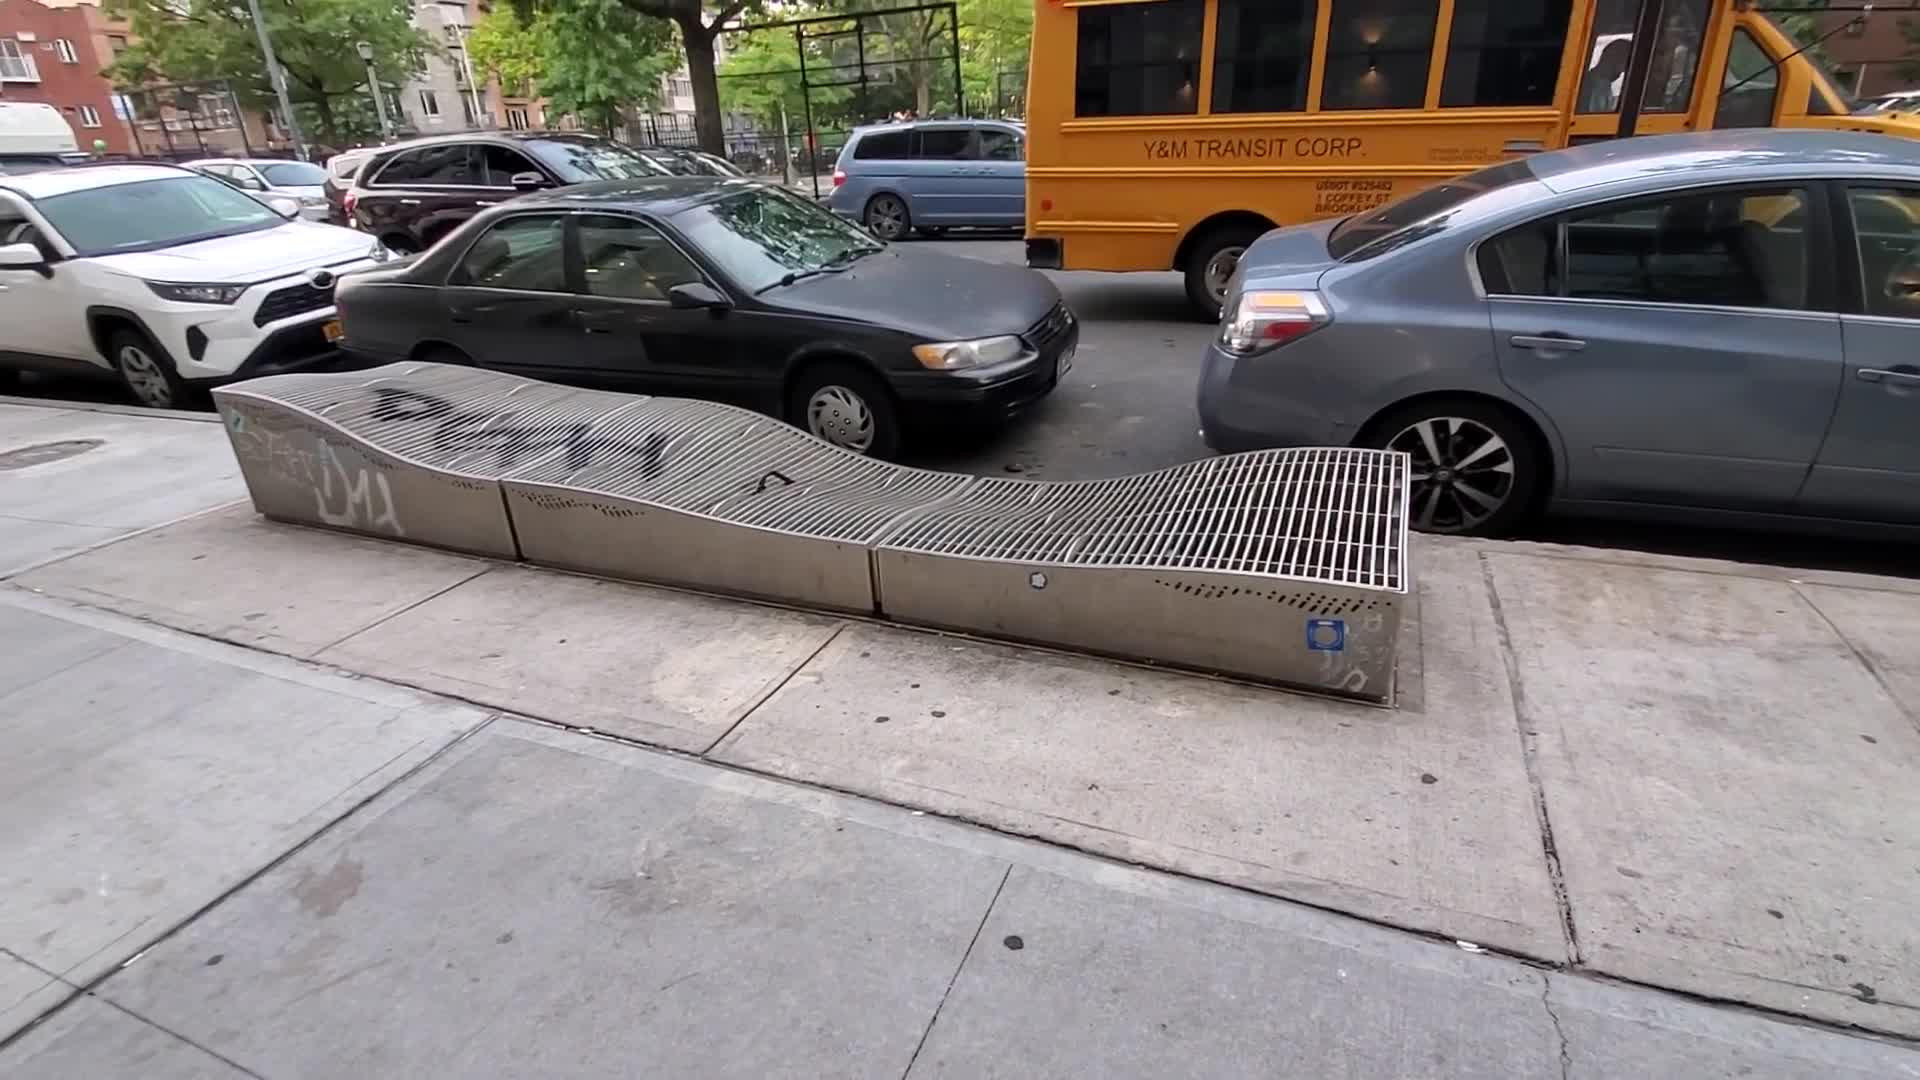 NYC homeless proof design